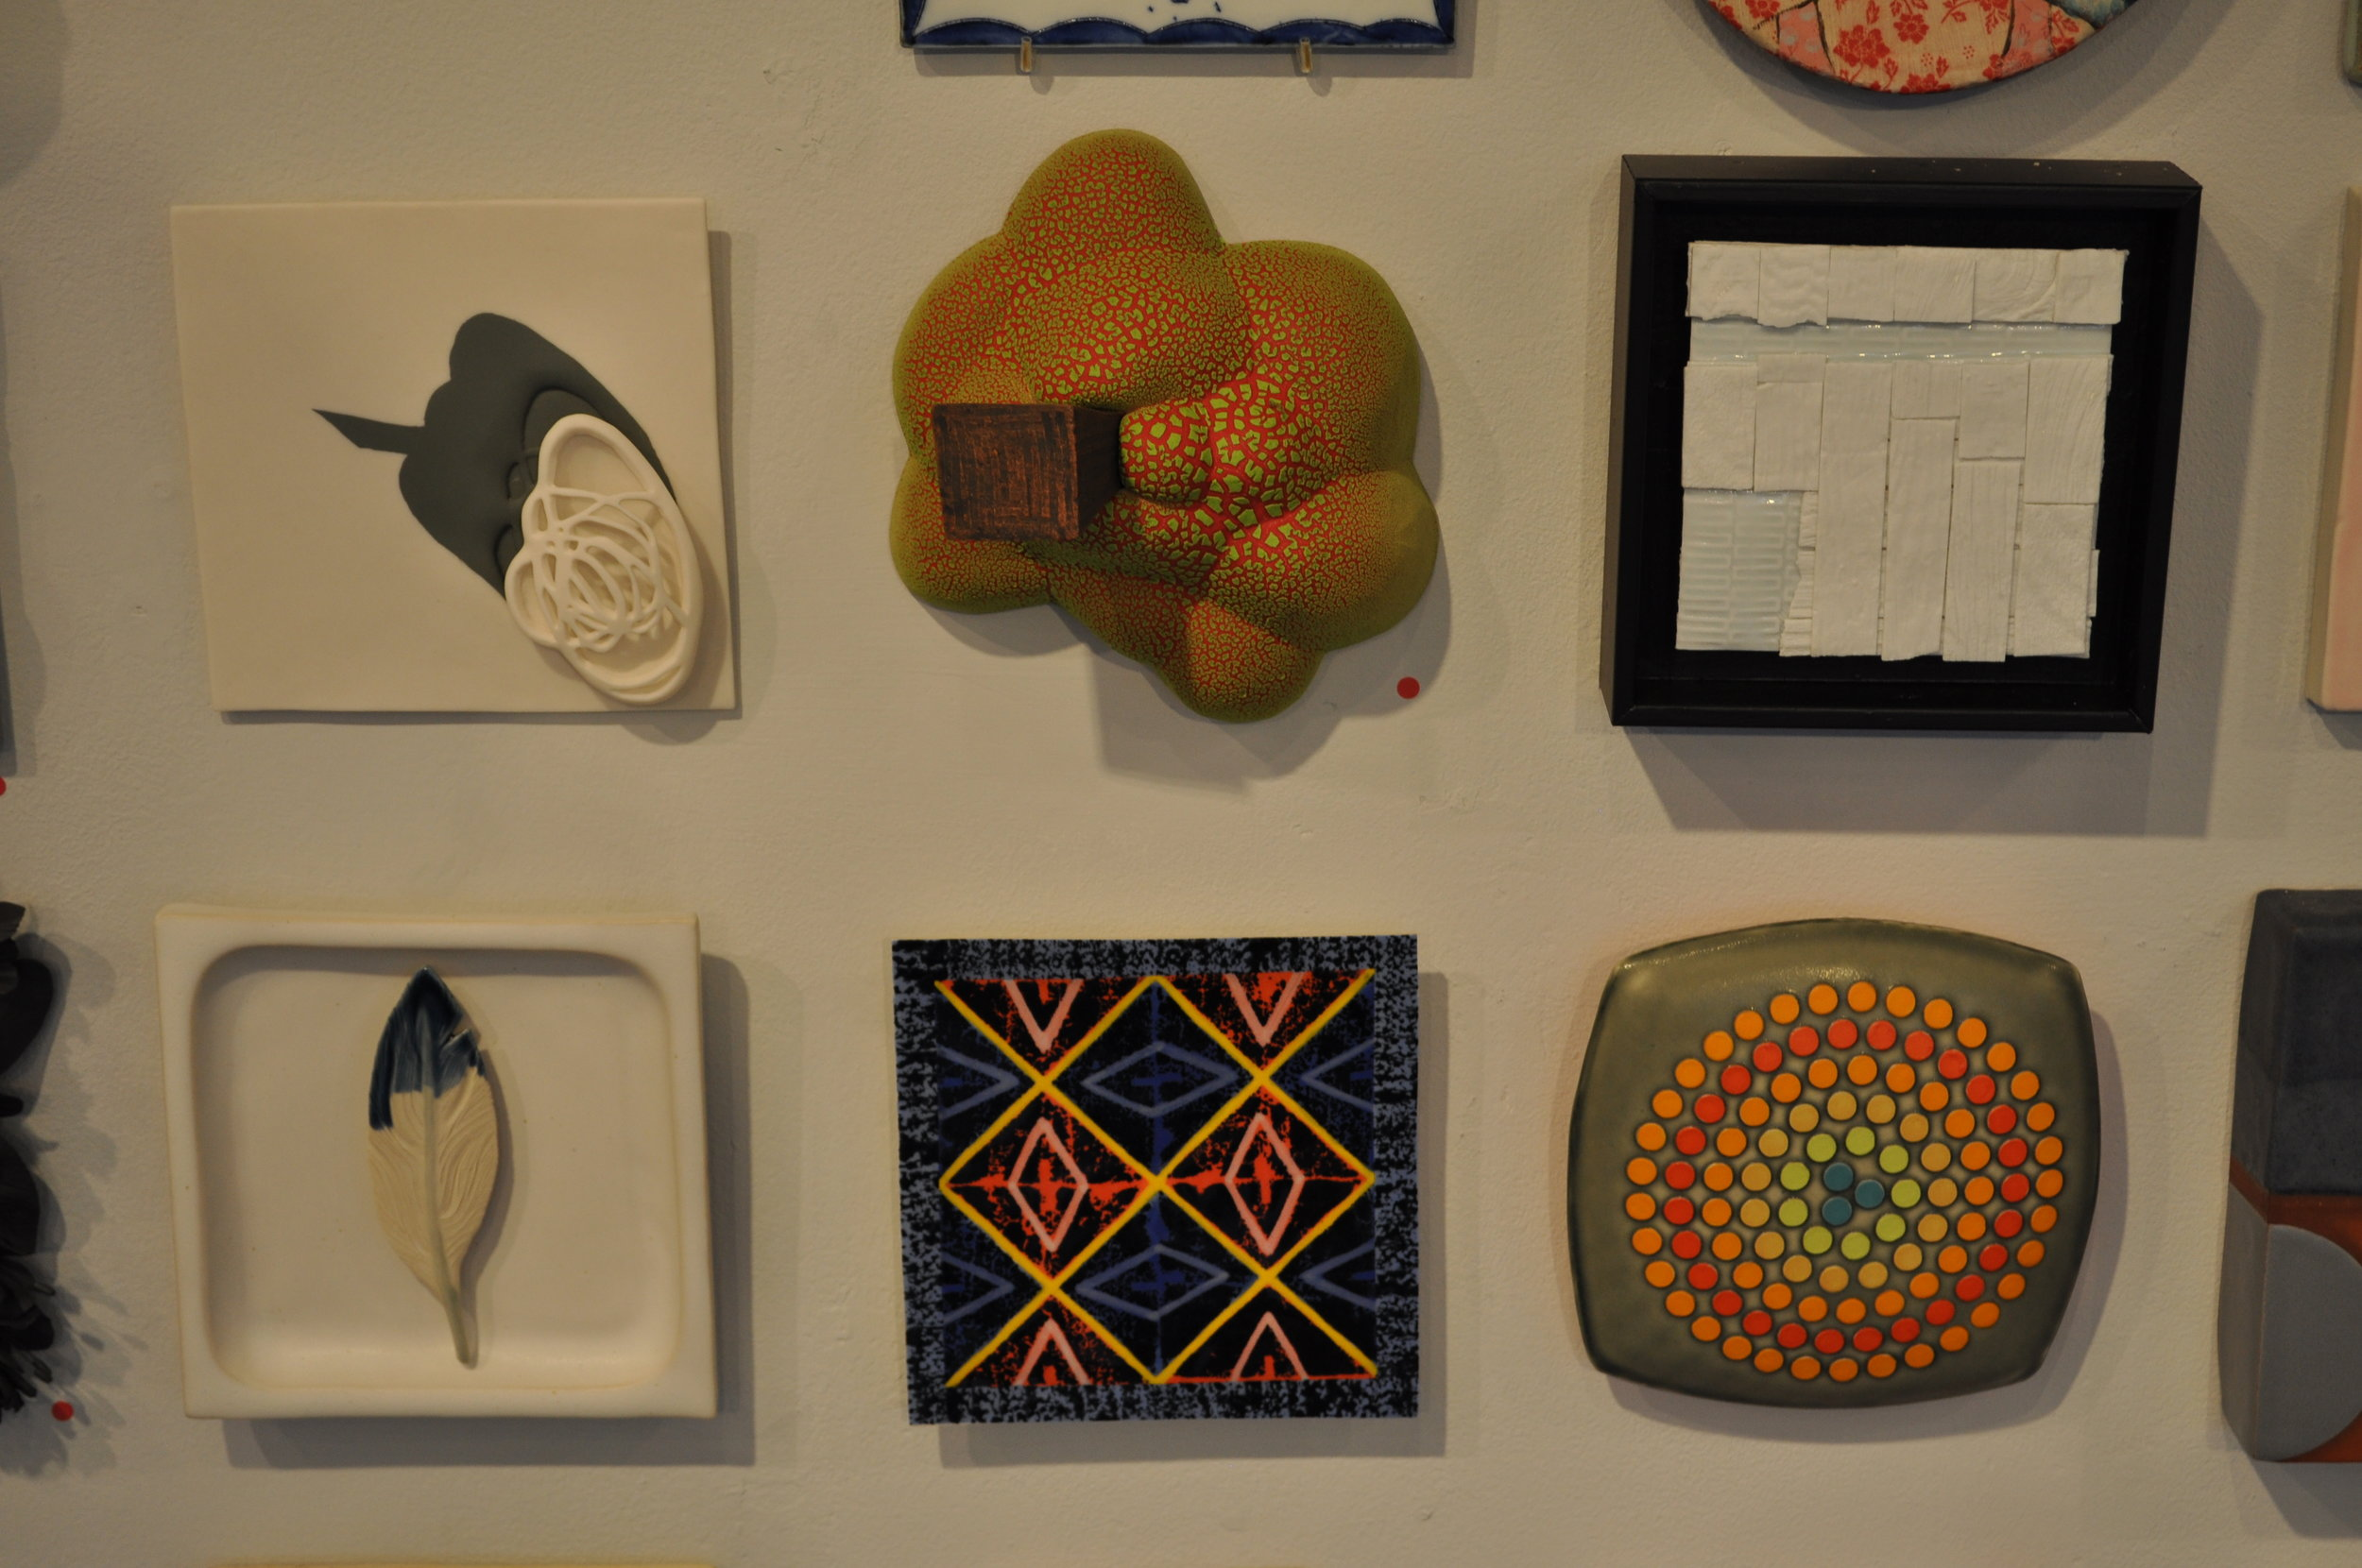 1.  Shalya Marsh,  Iteration Study 1  $250  2.  Jonathan McMillan,  Untitled  (SOLD)  3 . Bryan Hopkins,  Tile 3  (SOLD)  4. Kelly O'Sullivan,  Feather Tile #1  $90  5.  Don Reynolds,  Four Square  $50  6.  Chris Pickett,  Amber Waves $150